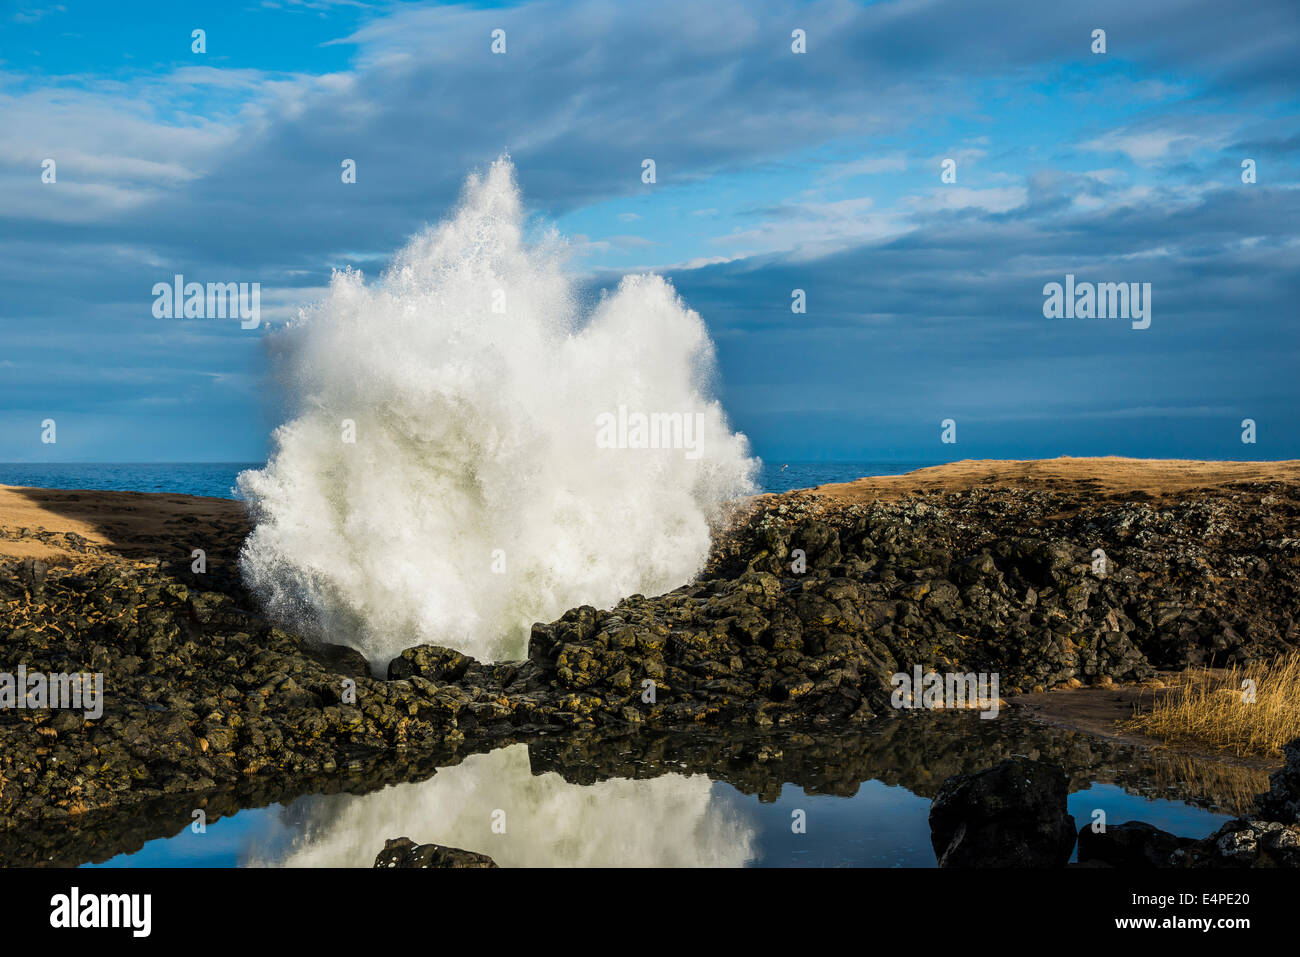 Fountain from a blowhole, surf shooting up through rocks from below, Anarstapi, Snaefellsness peninsula, Iceland - Stock Image